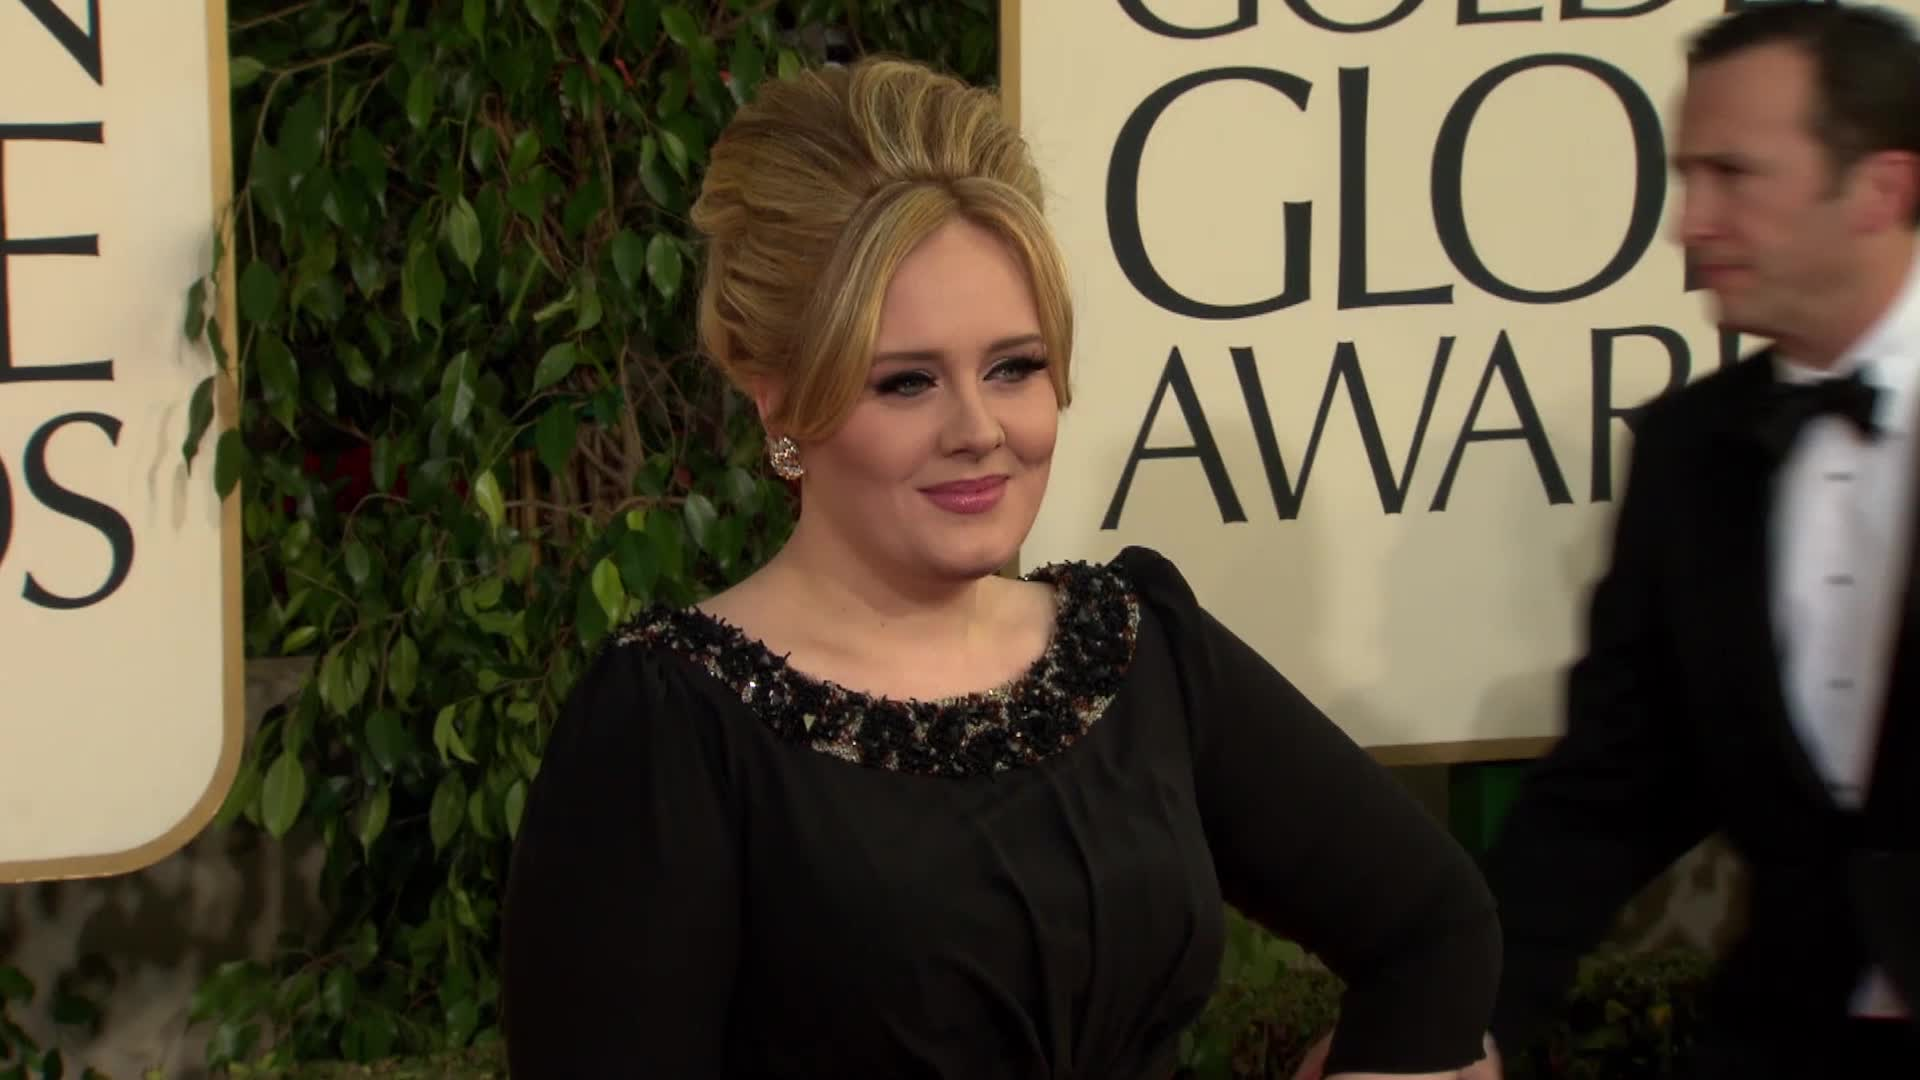 Adele Has Not Given Donald Trump Permission to Use Her Songs